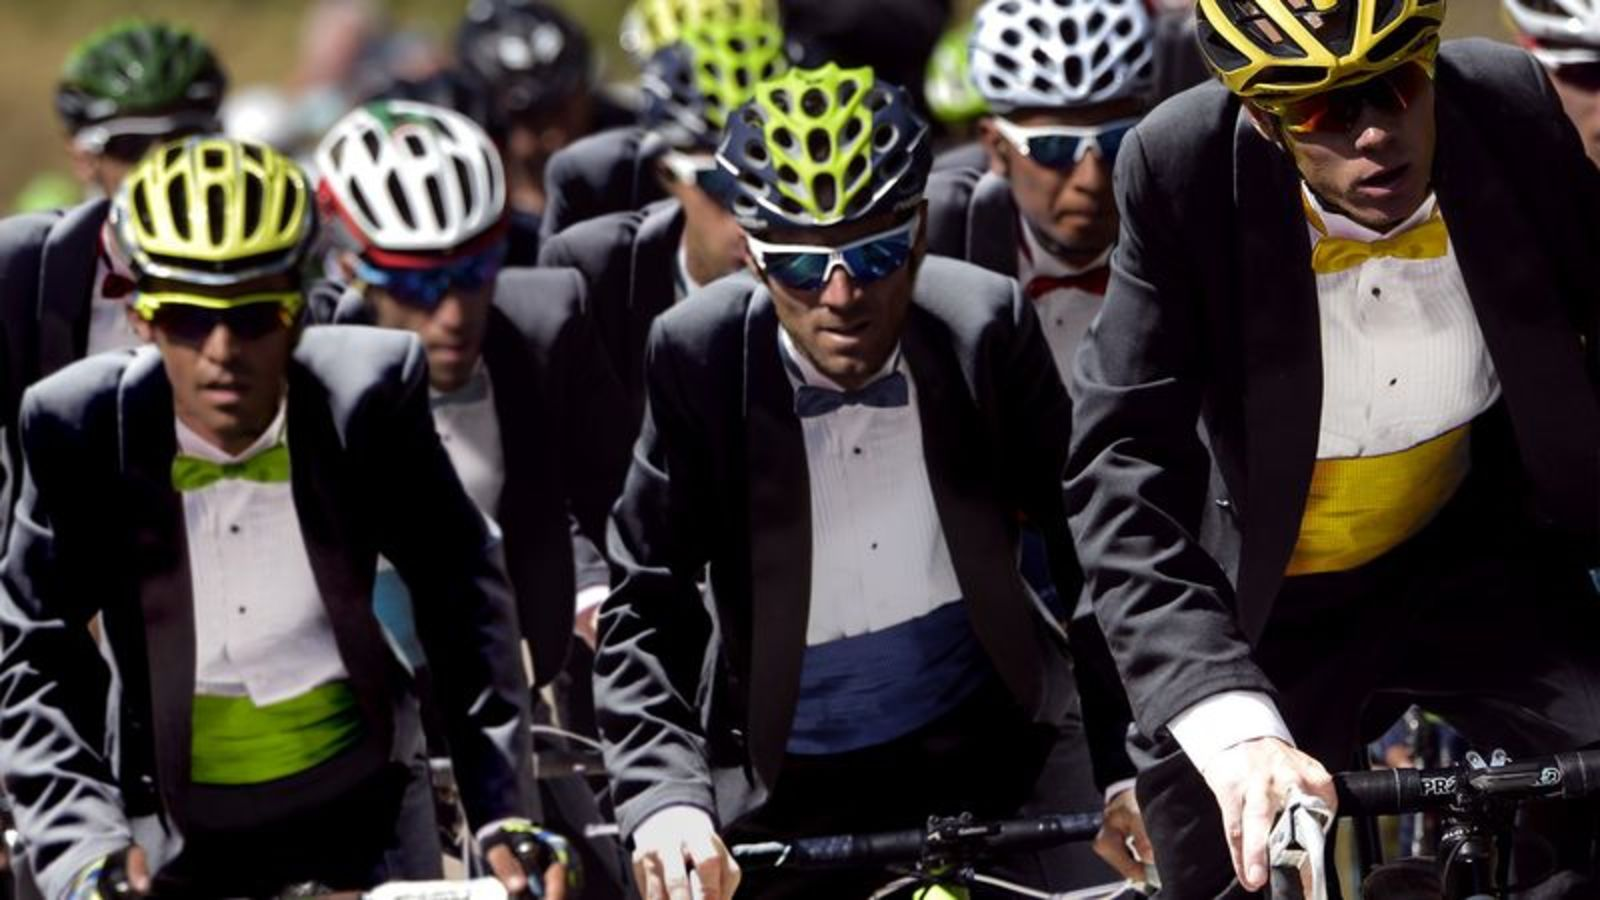 Bicyclists Begin Formalwear Stage Of Tour De France https://t.co/BVLGfwJhdP https://t.co/9pJgozXLL1